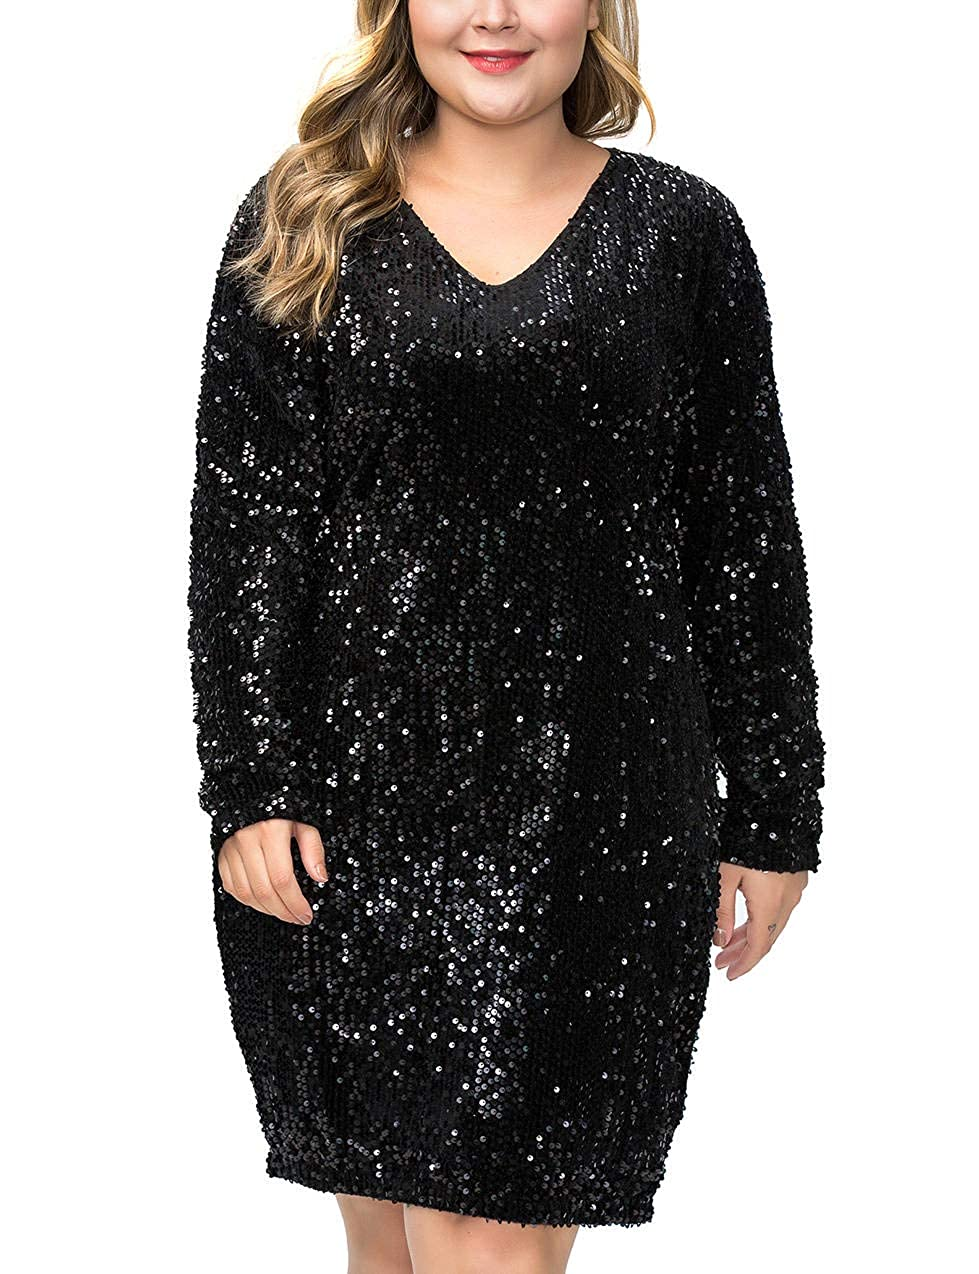 Henly Womens Plus Size Glitter Sequin Dress V Neck Bodycon Party Club Cocktail Evening Mini Dresses